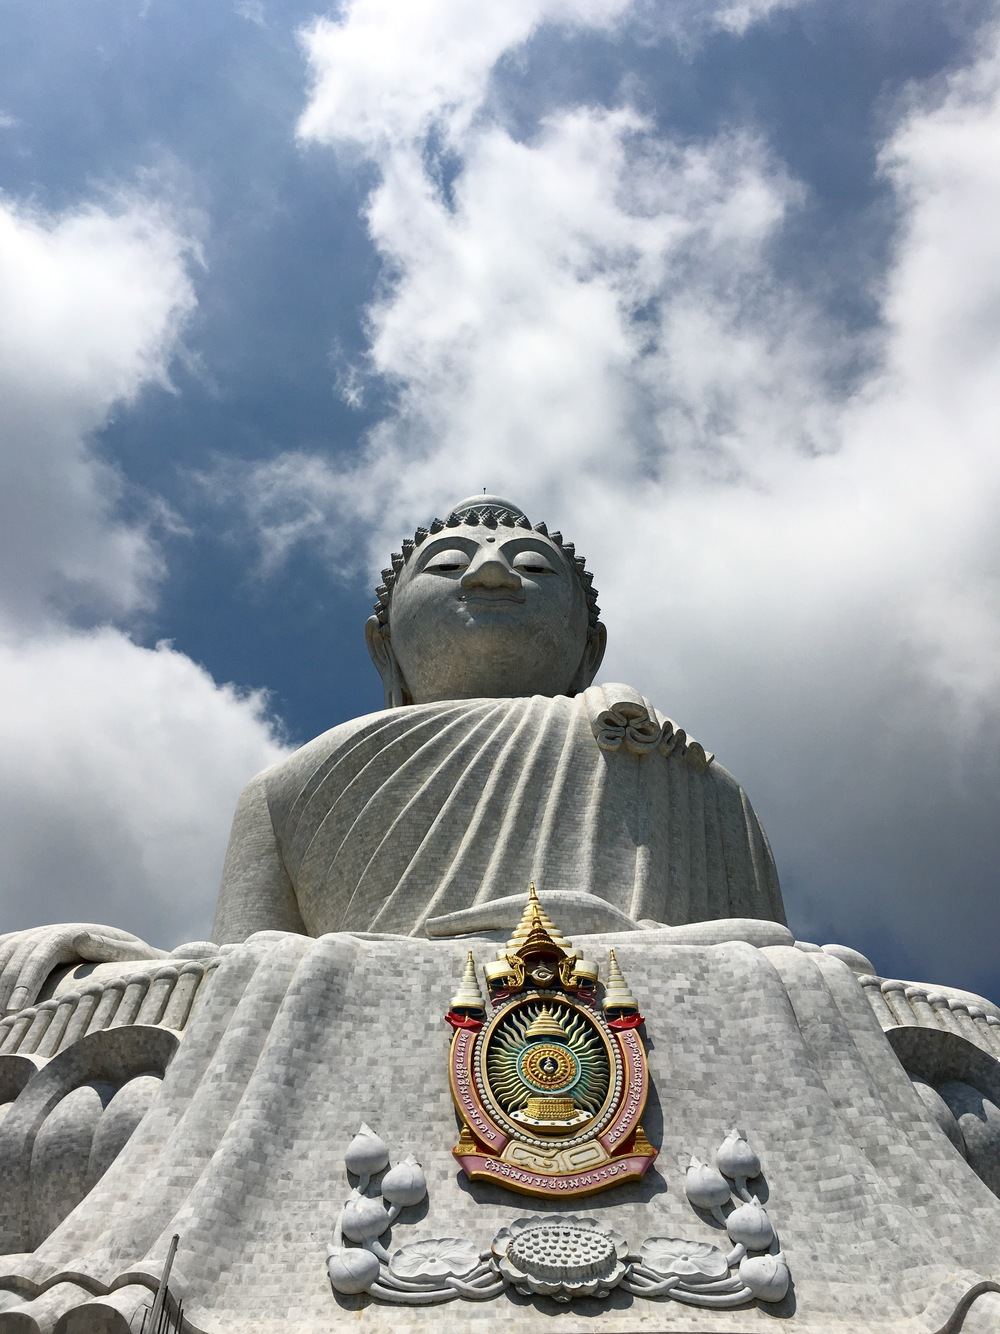 The Big Buddha that can be seen atop a mountain throughout the southern part of Phuket, Thailand.